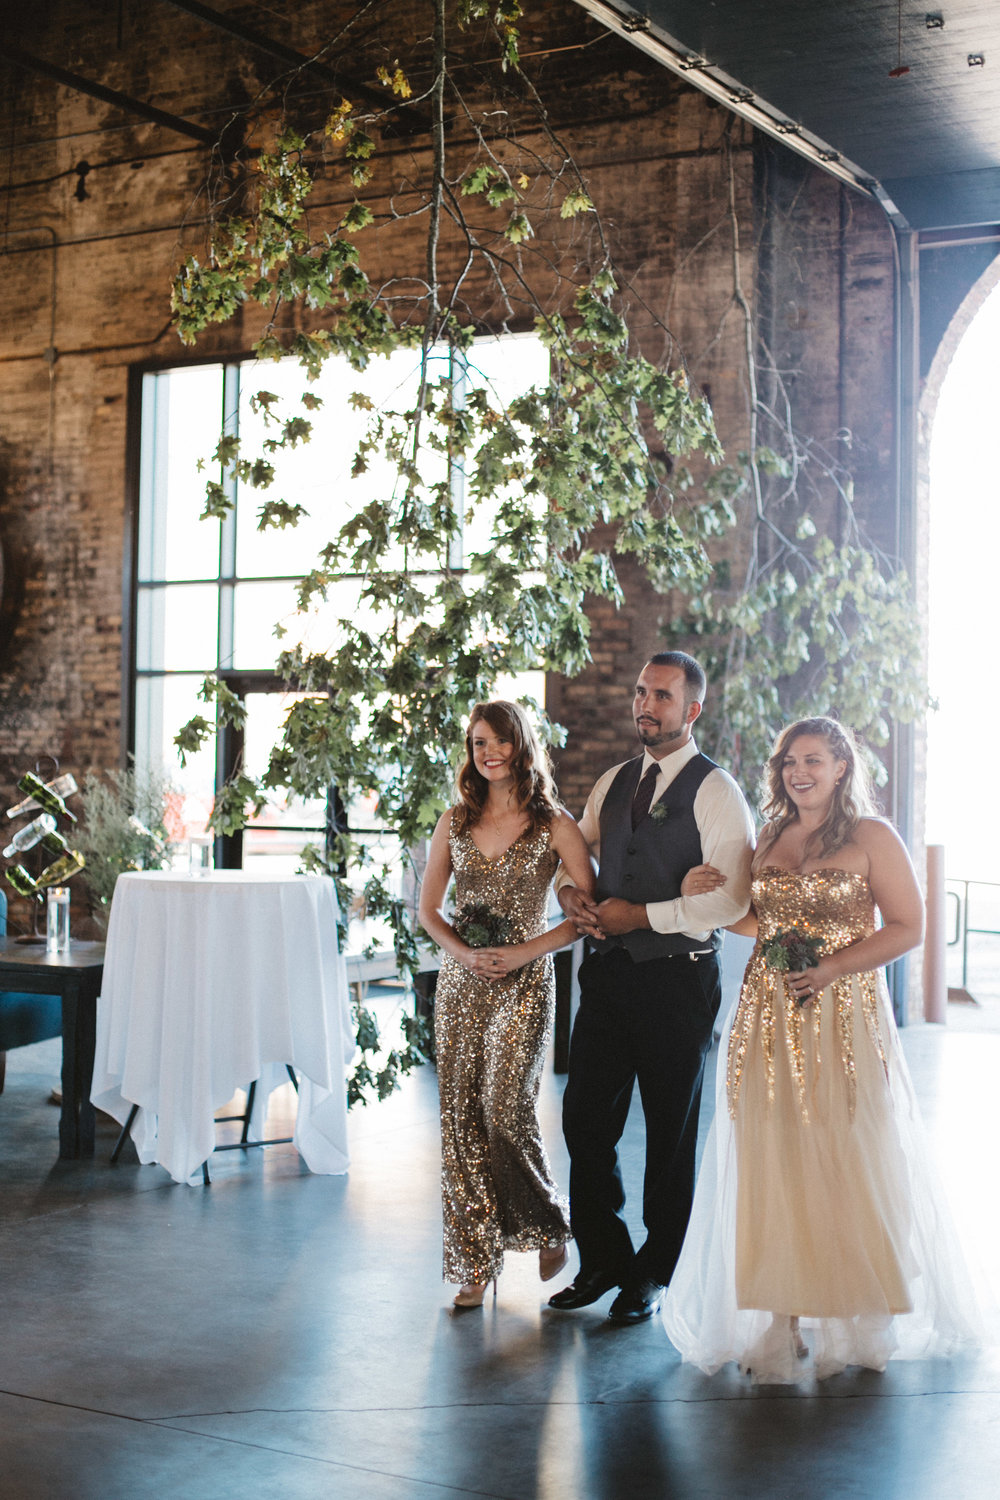 Warehouse wedding ceremony. Photography by Britt DeZeeuw, NP Event Space photographer.